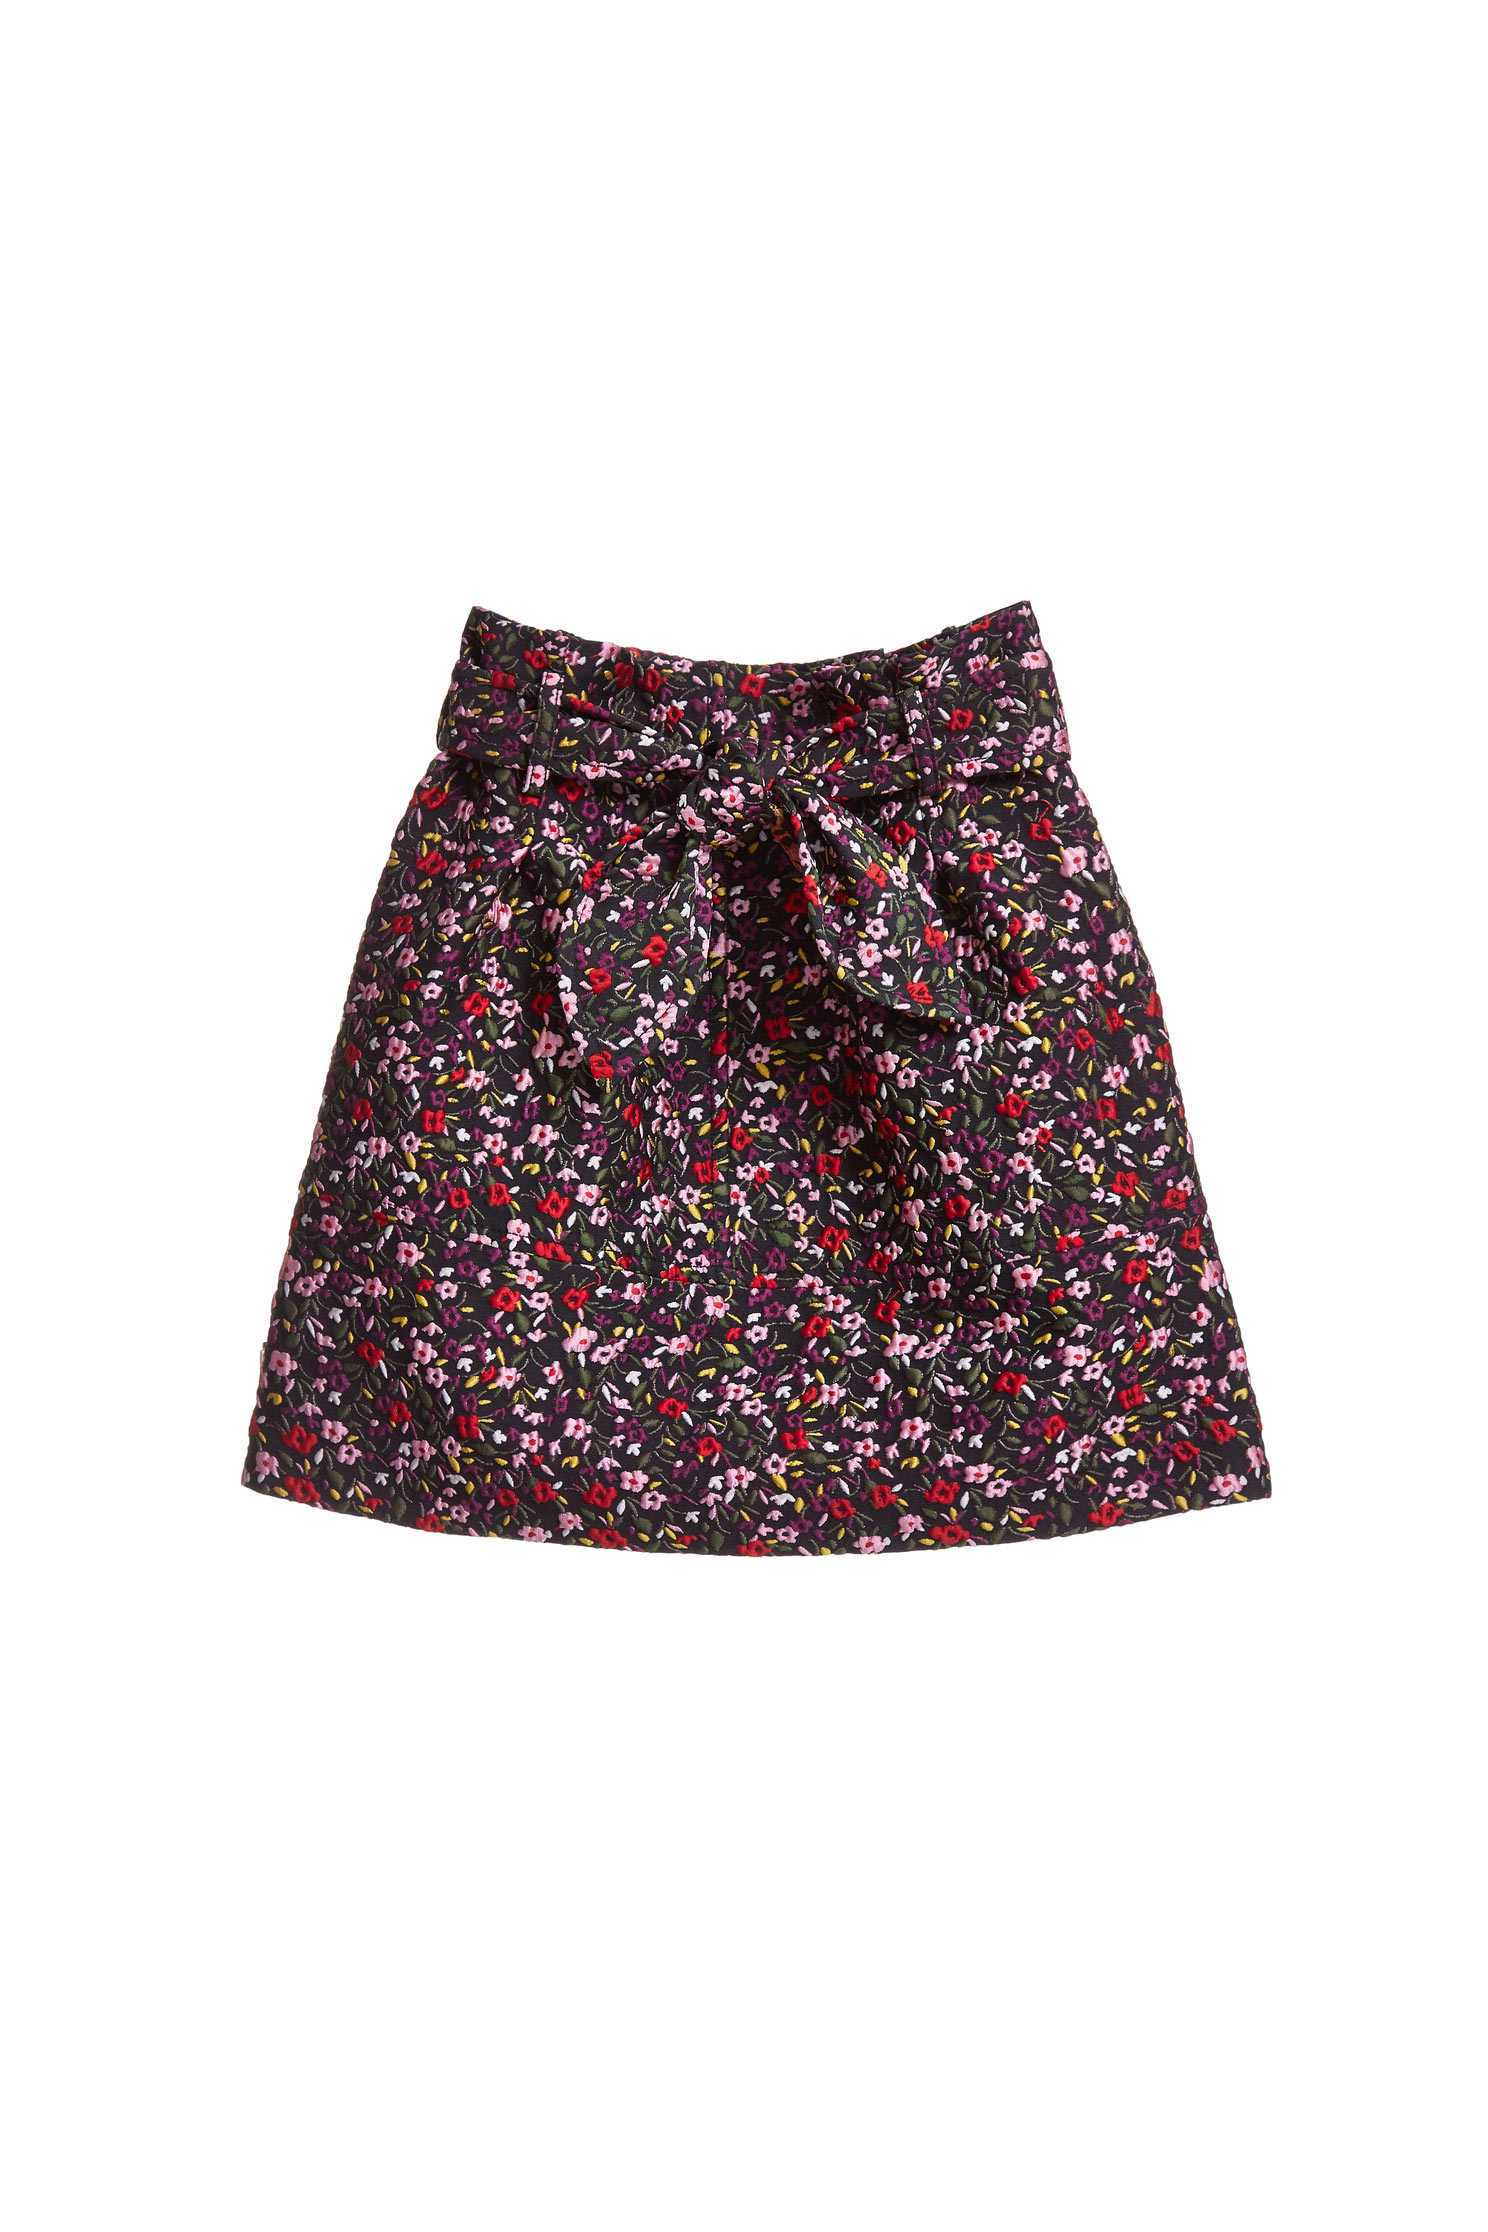 Retro floral totem mini skirt